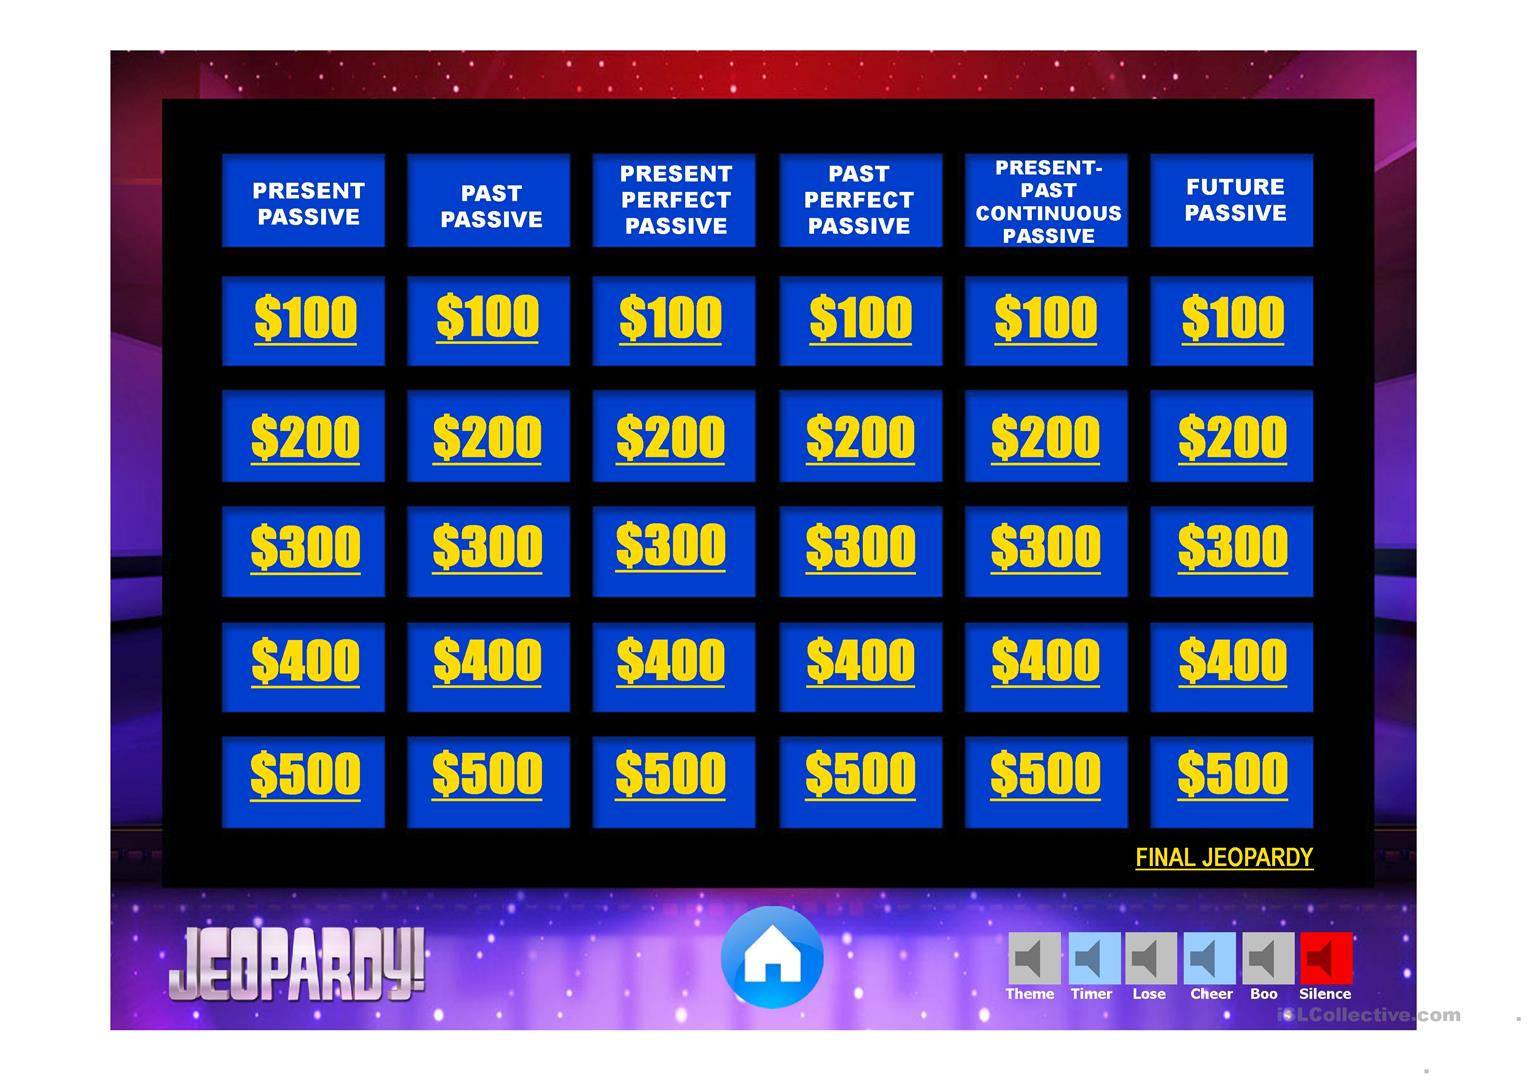 Passive Review Jeopardy Game Worksheet